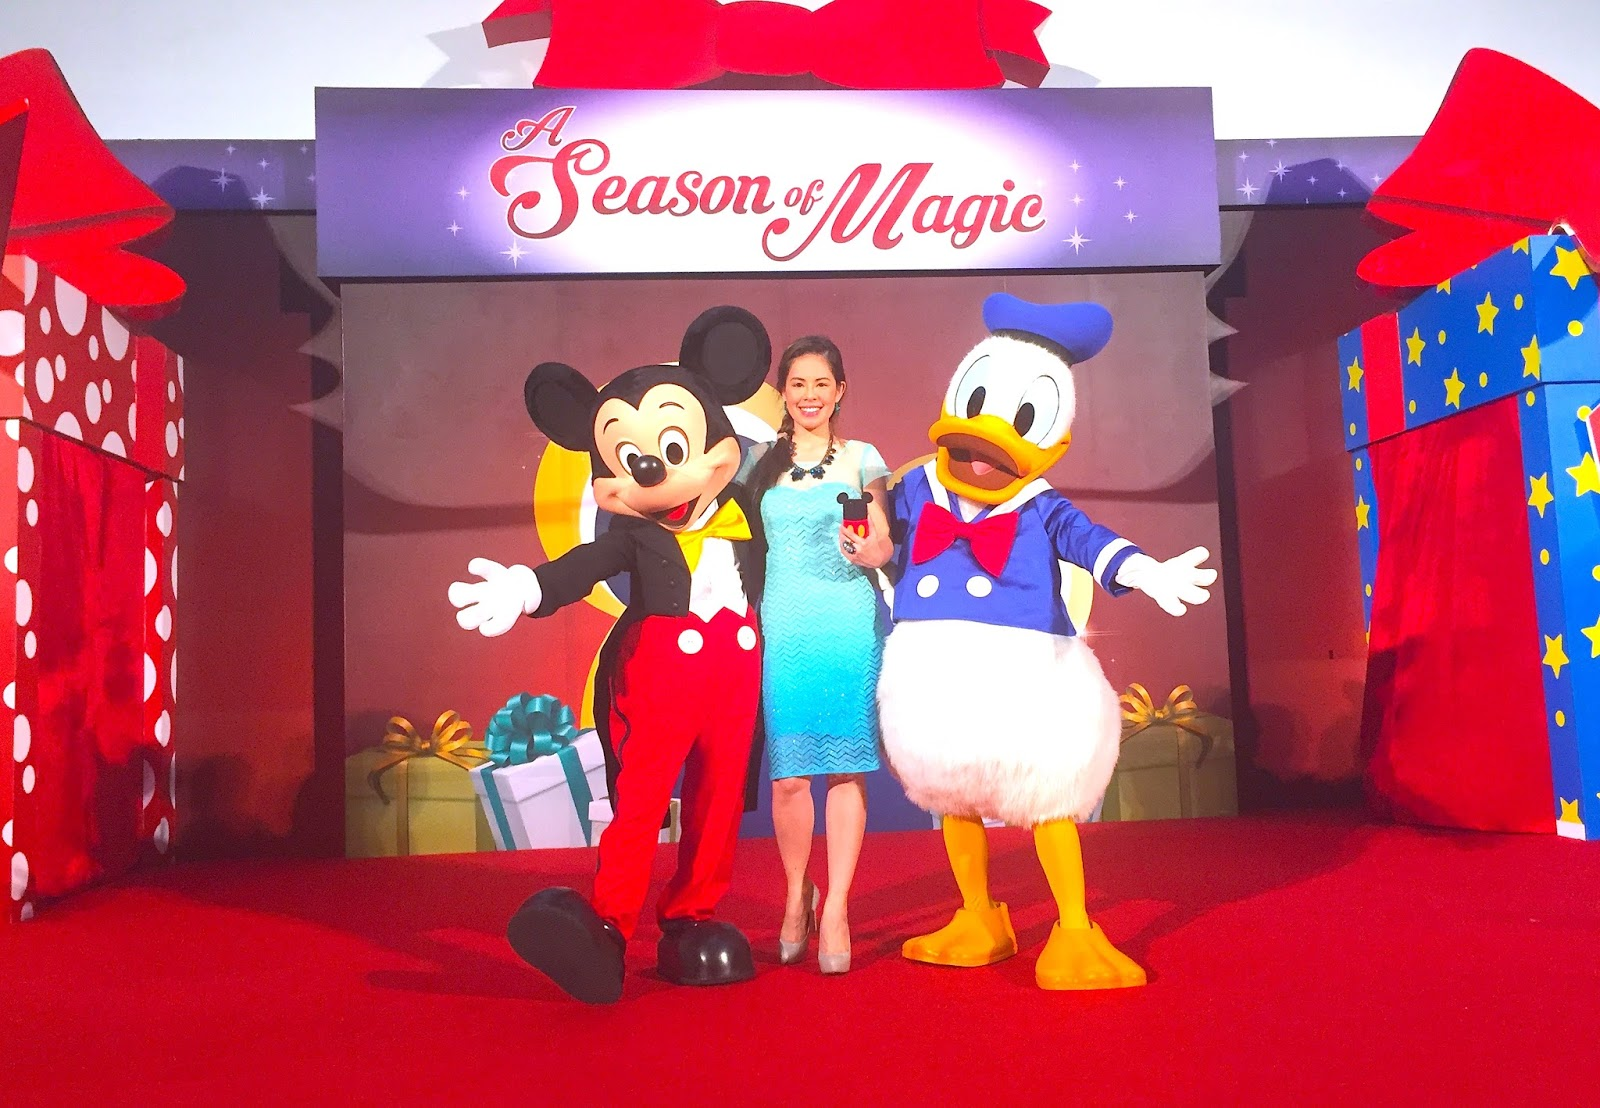 Marylaines gigs getaways and godric my unforgettable christmas finally mickey mouse and donald duck let me into their magical realm and my first project is disney on ice led by an awesome meet greet in four m4hsunfo